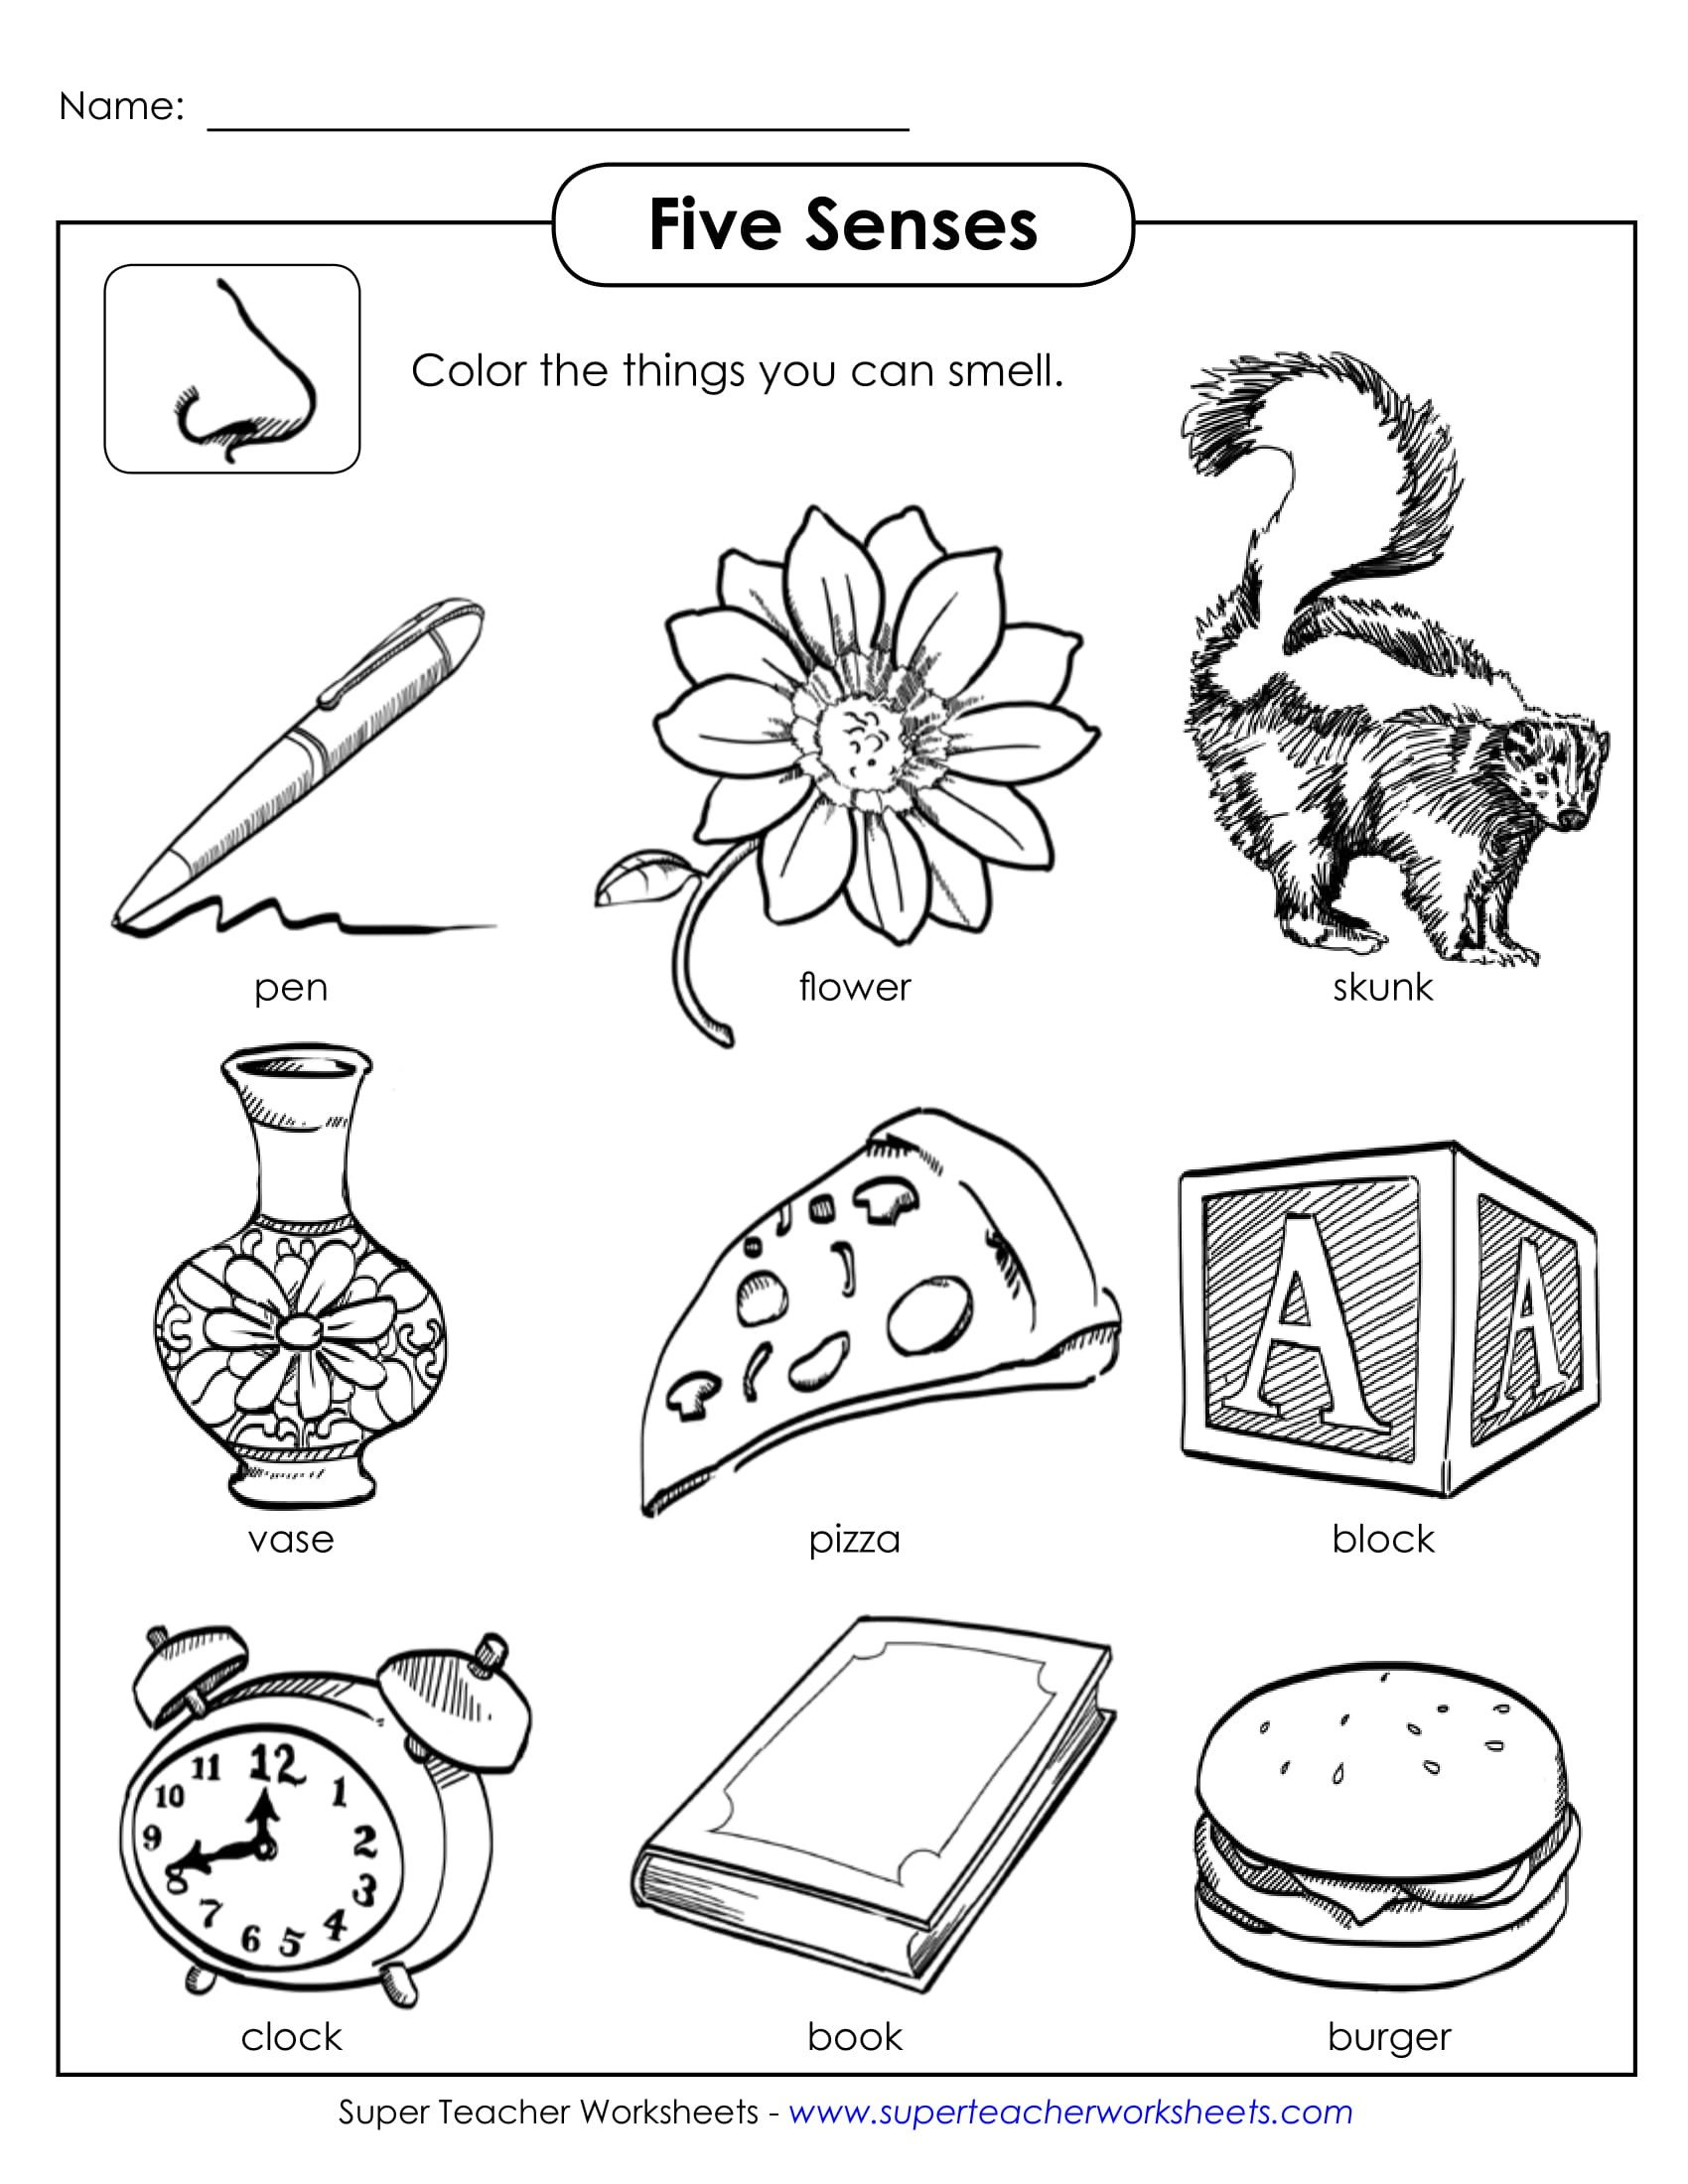 Five Senses Worksheets Pdf Your Sense Worksheet Printable Worksheets and Activities for